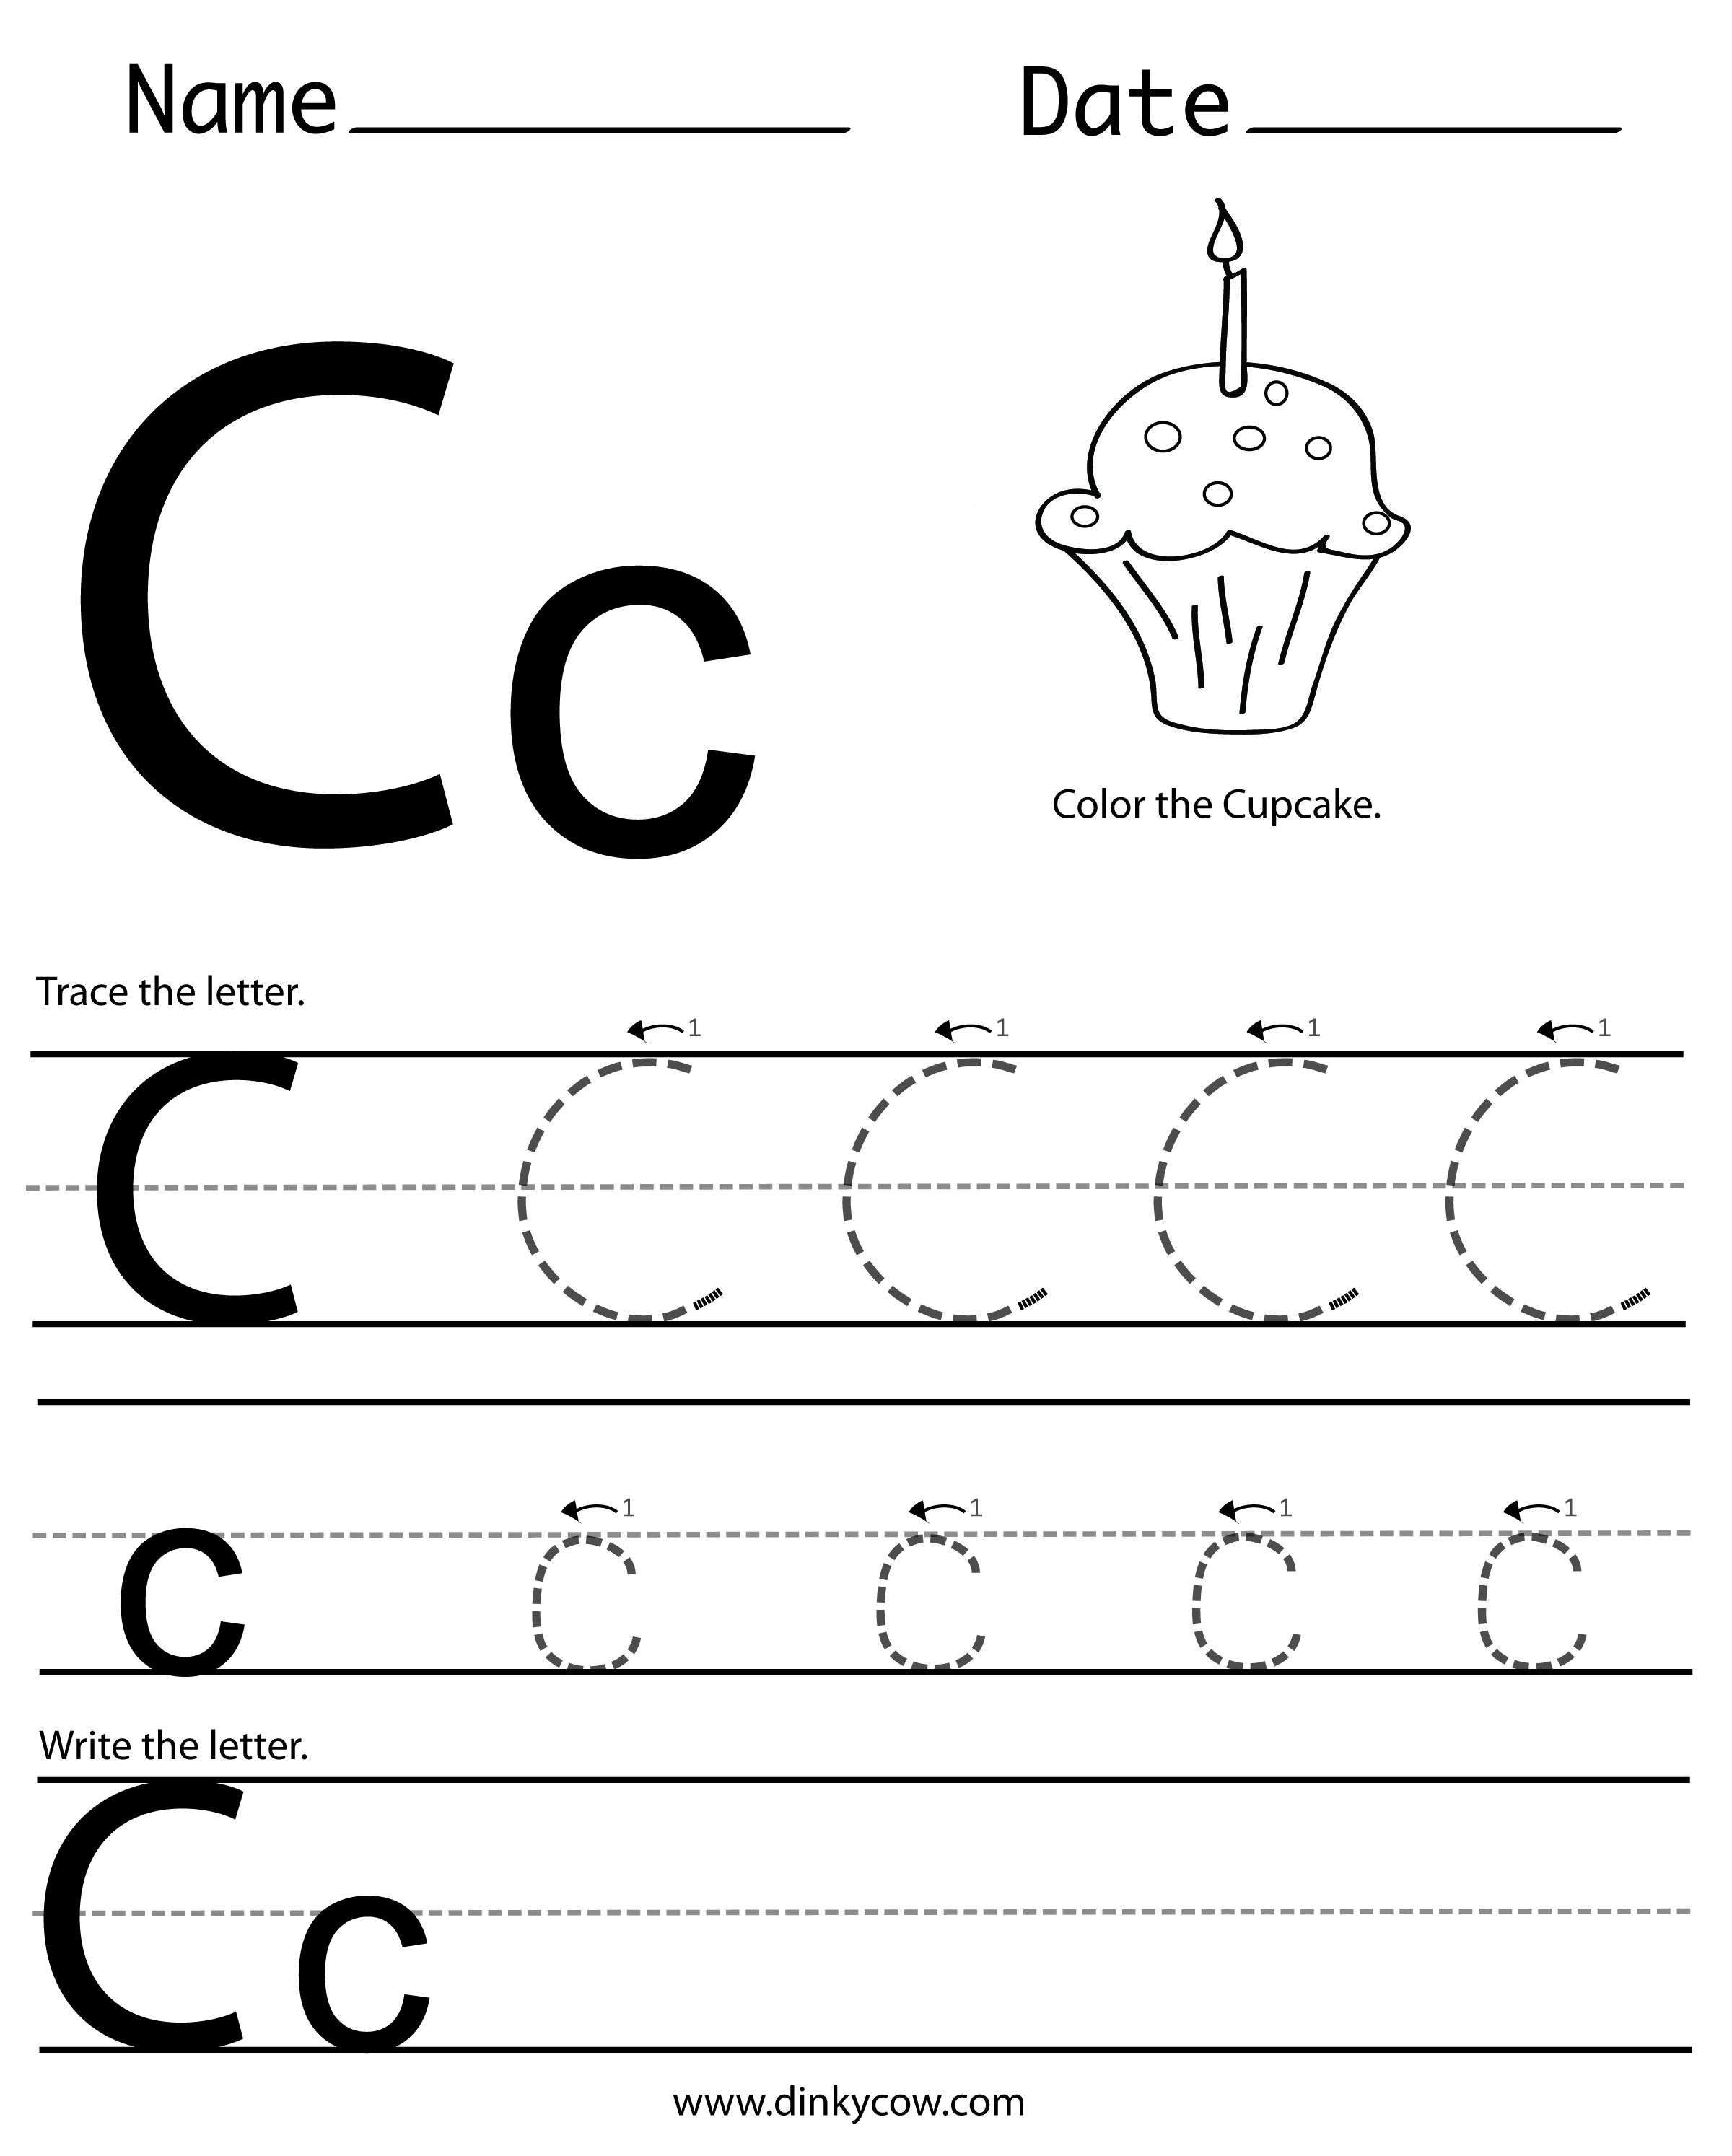 C Free Handwriting Worksheet Print